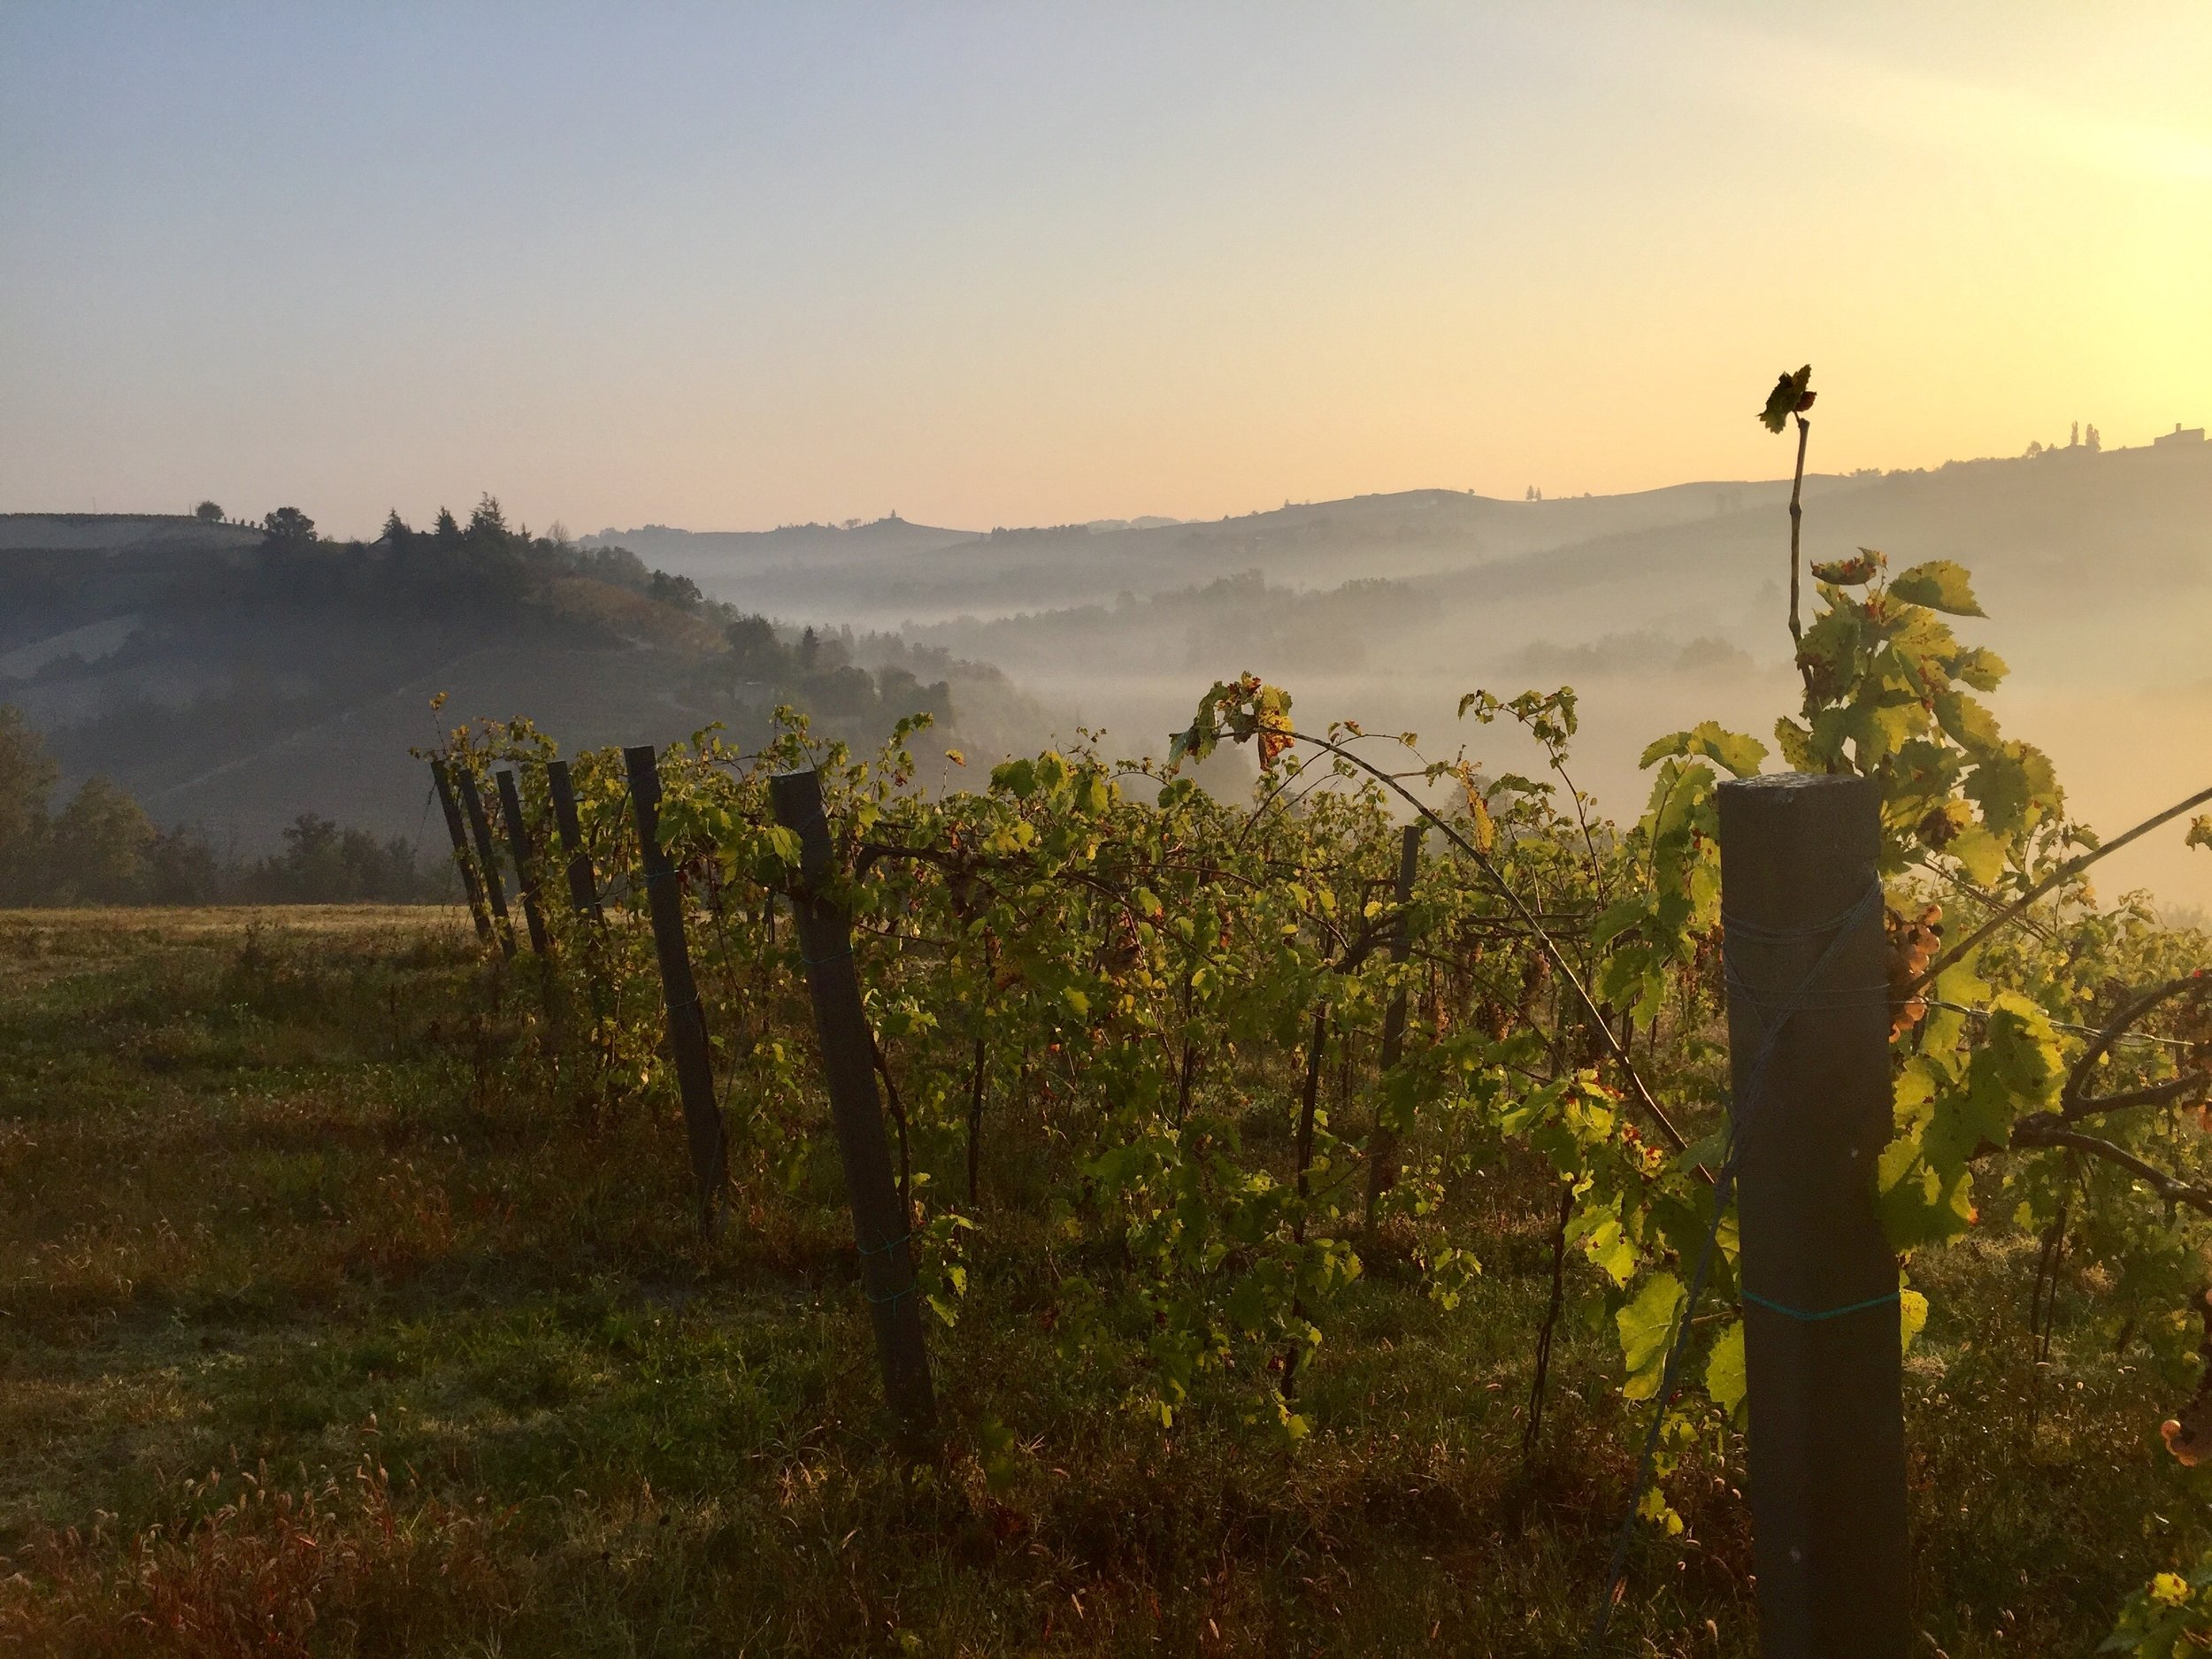 Morning nebbia in the valleys of the langhe